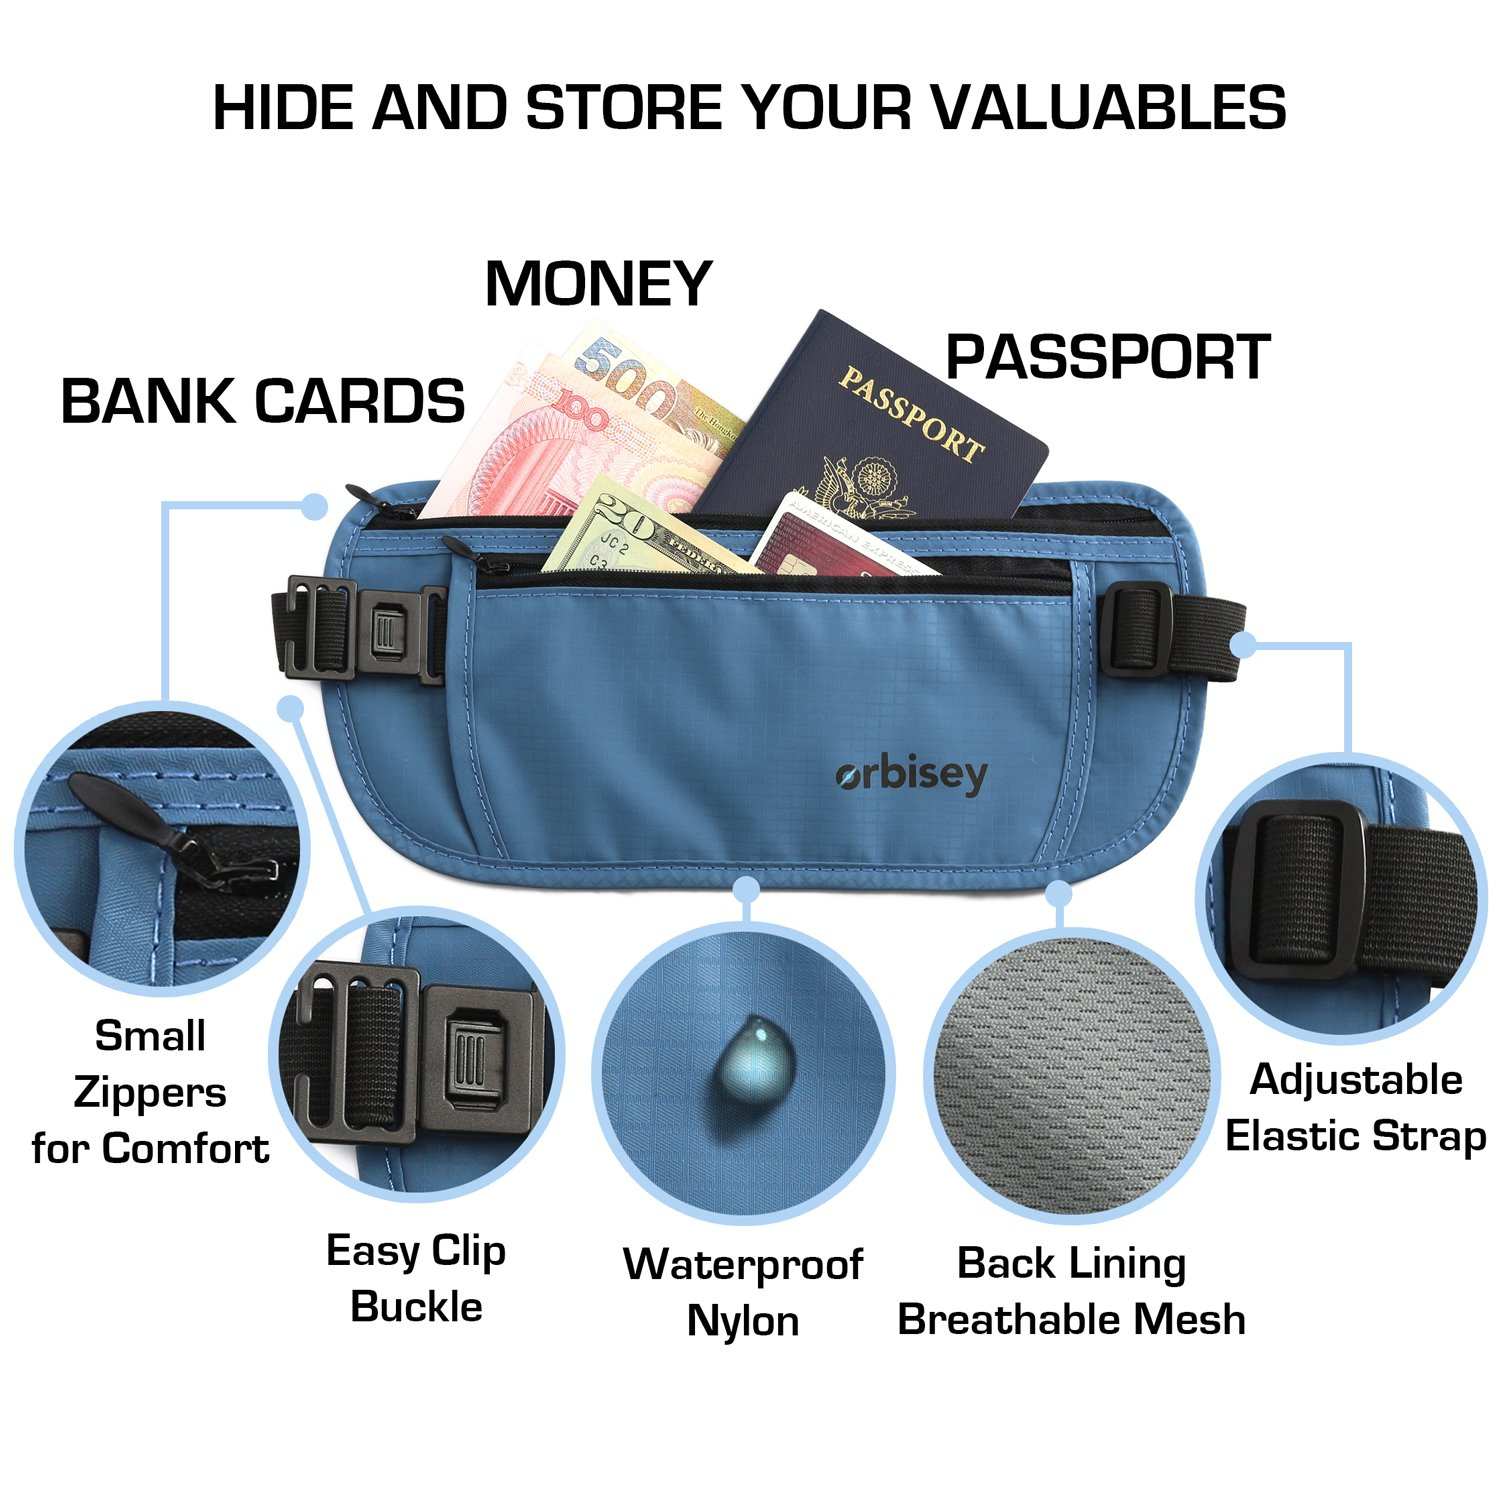 universal currency coin wallet